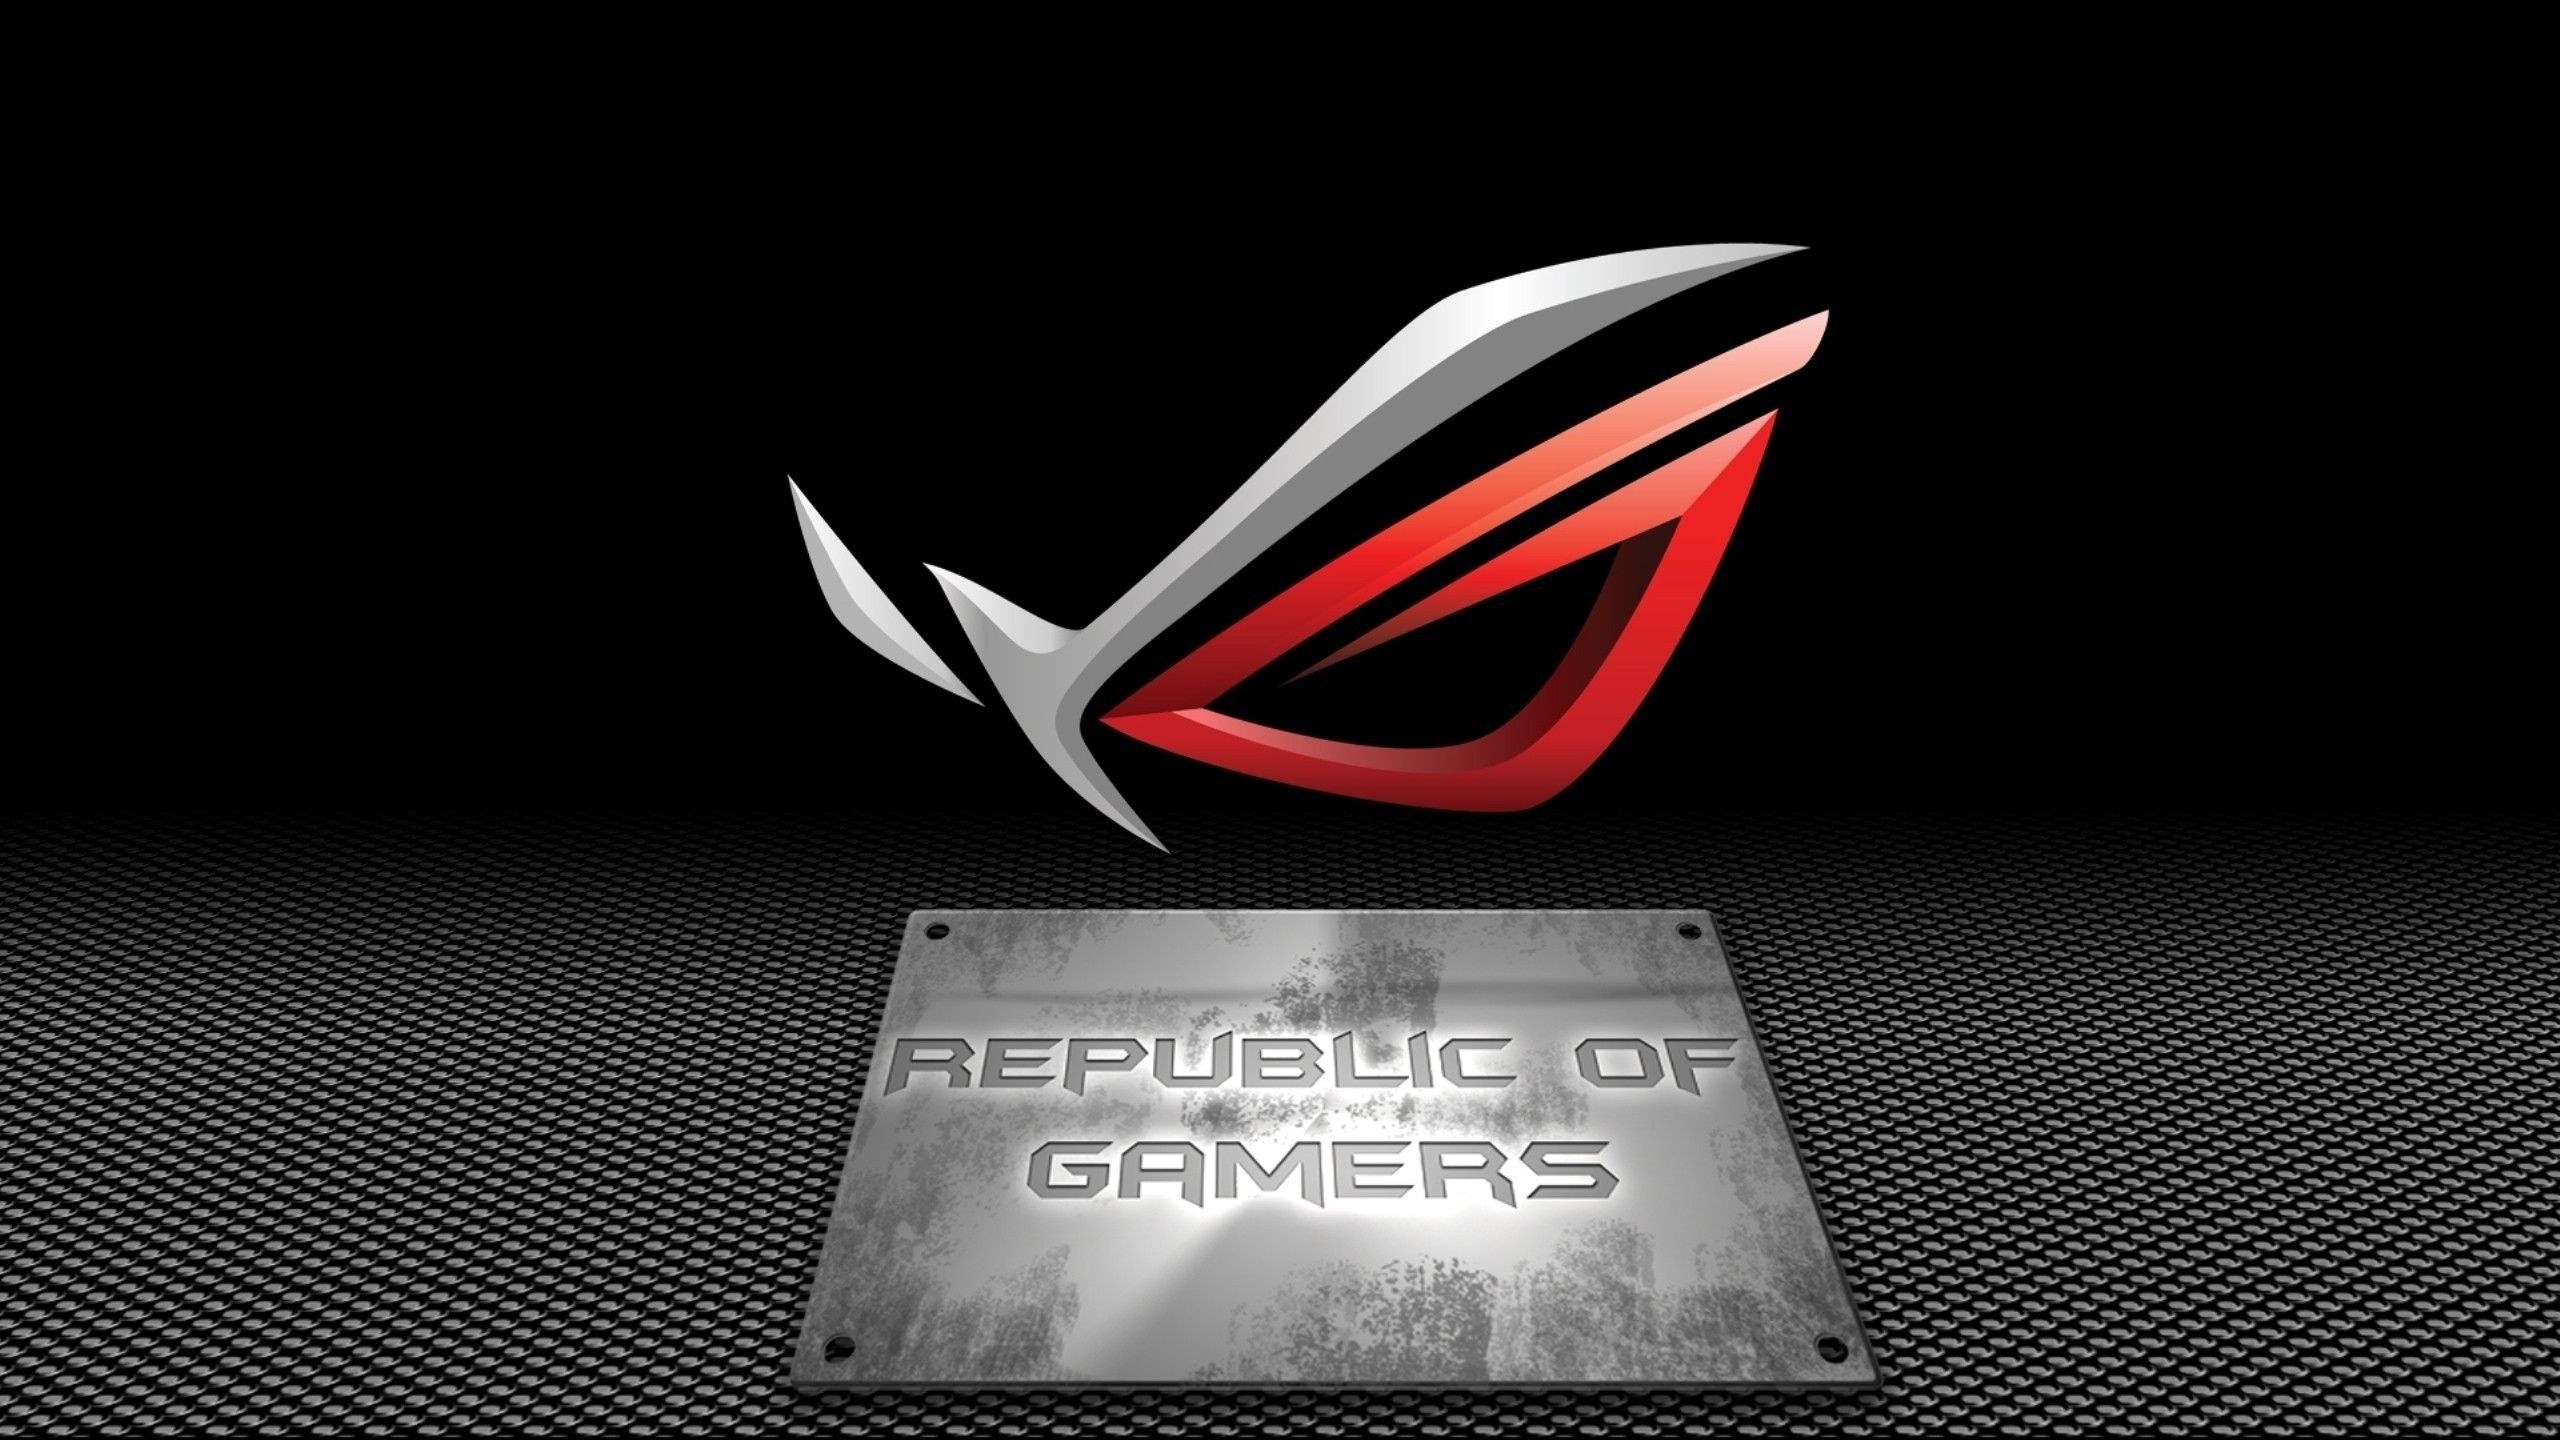 Asus rog republic of gamers wallpaper via www - Asus x series wallpaper hd ...